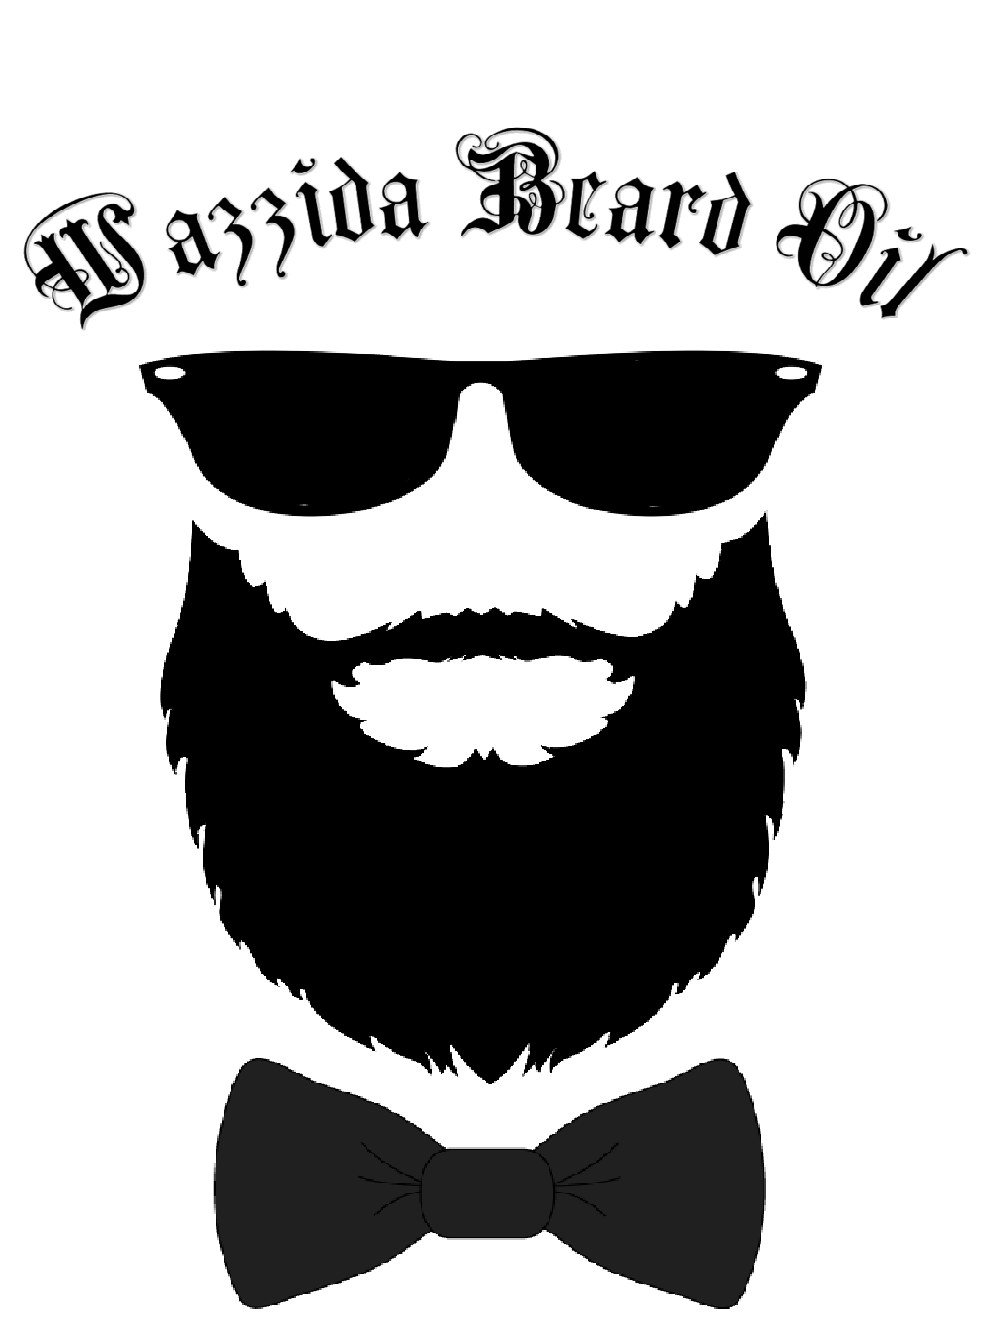 clipart free library Im not a writer. Beard clipart mens